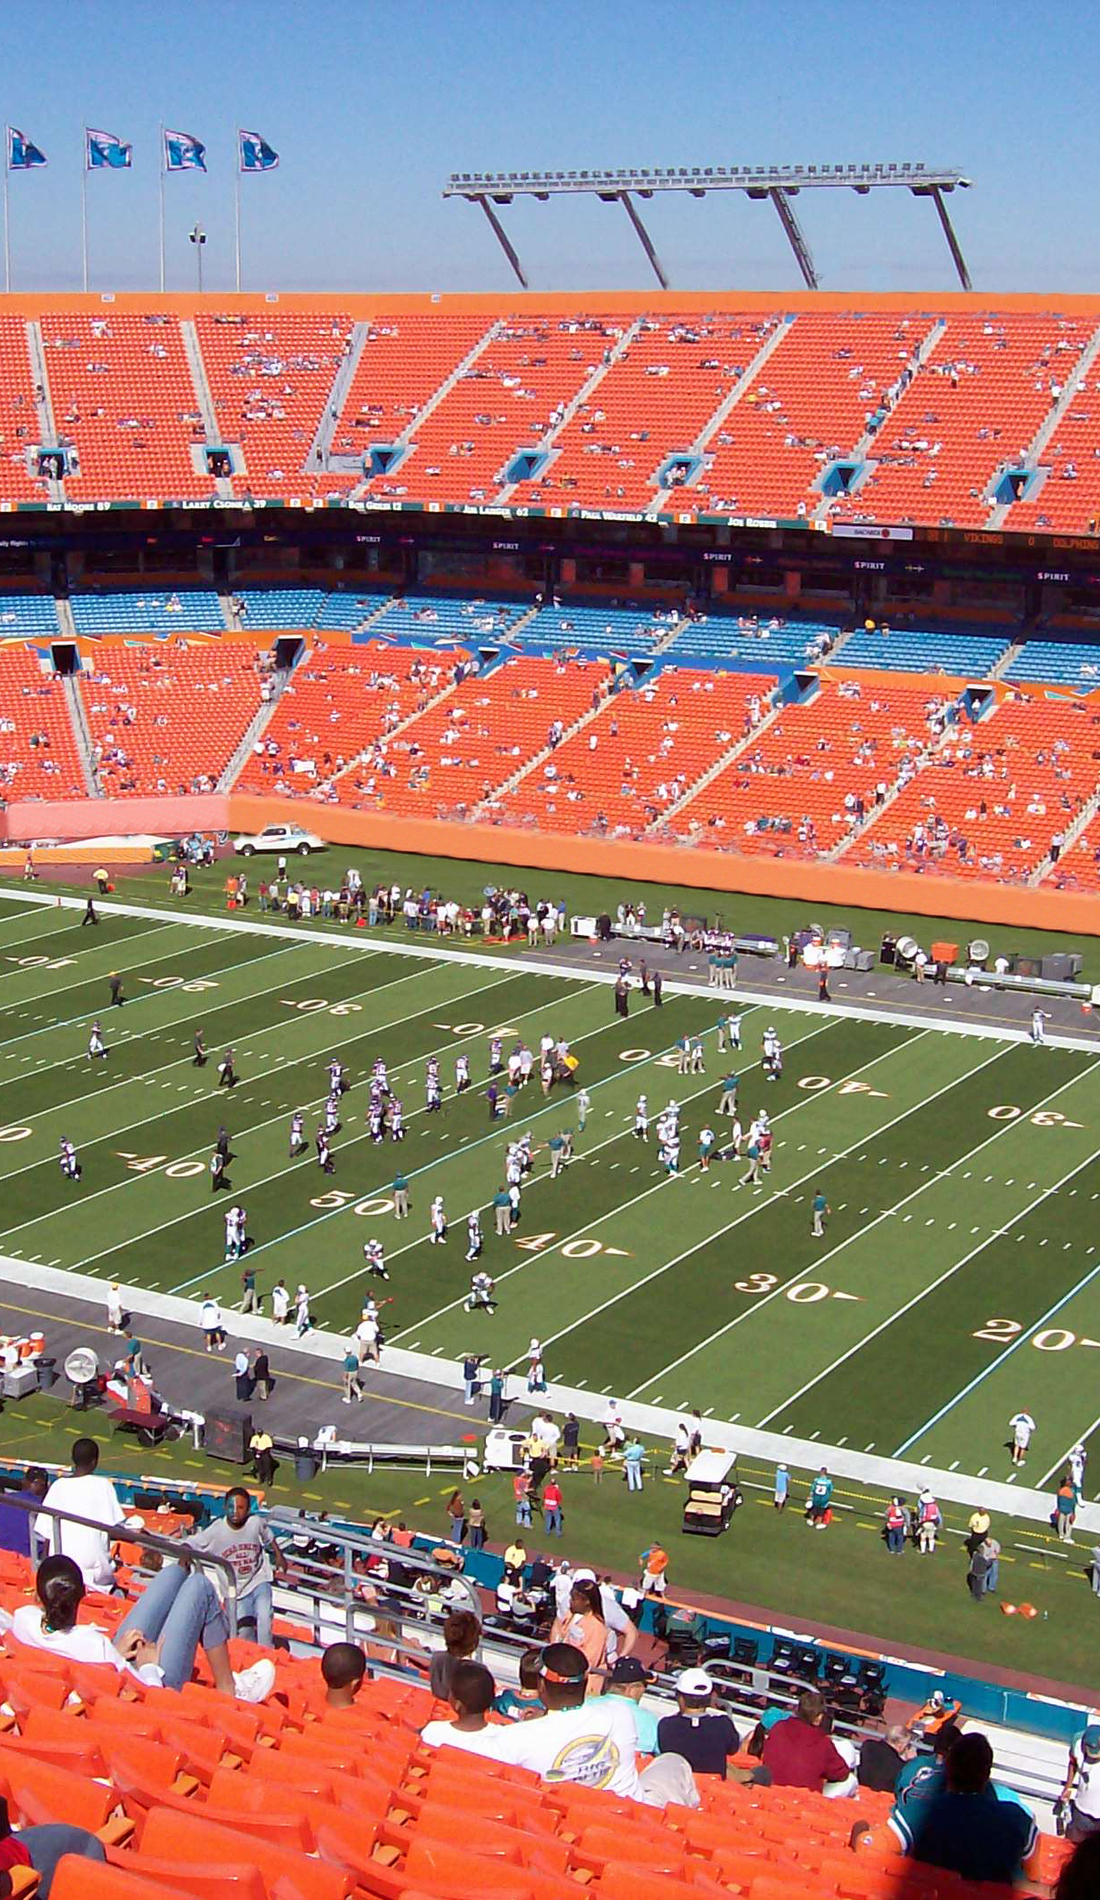 A Miami Hurricanes Football live event